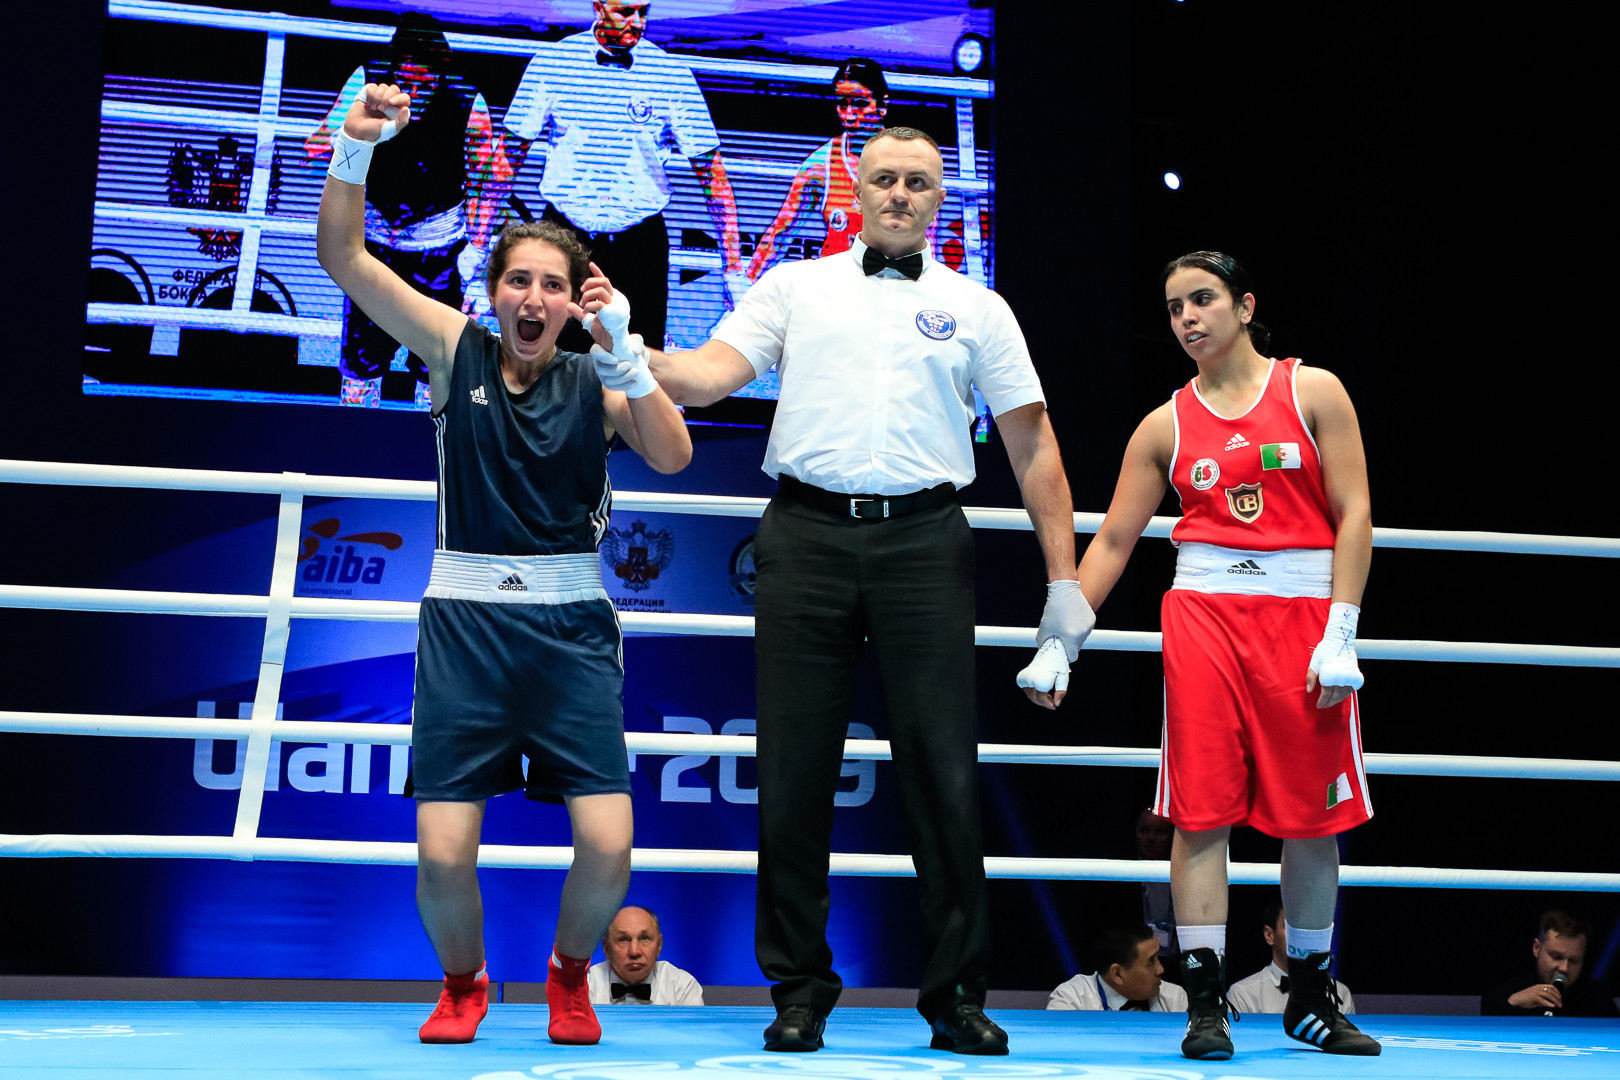 Delight as light welterweight boxers reach AIBA Women's World Championship quarter-finals